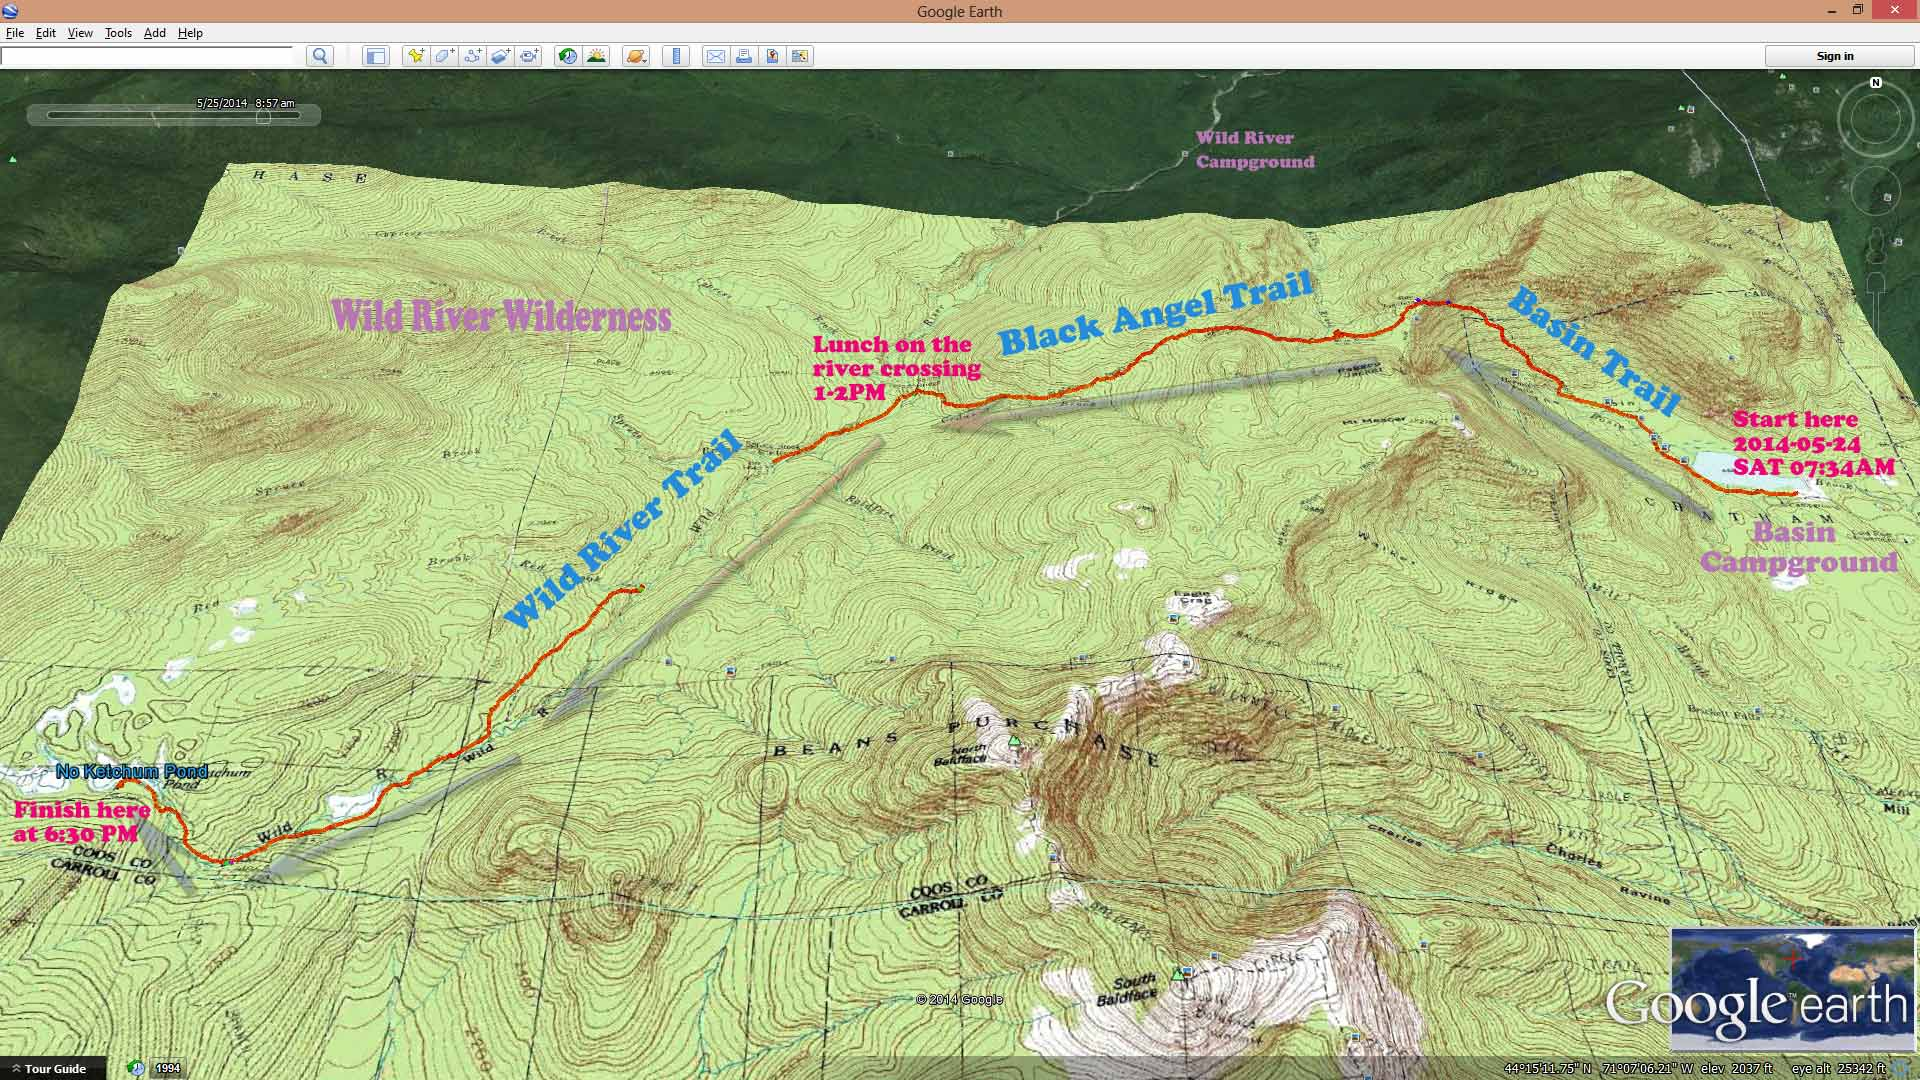 2014-05-24 SA 07AM-6PM Hike Overview